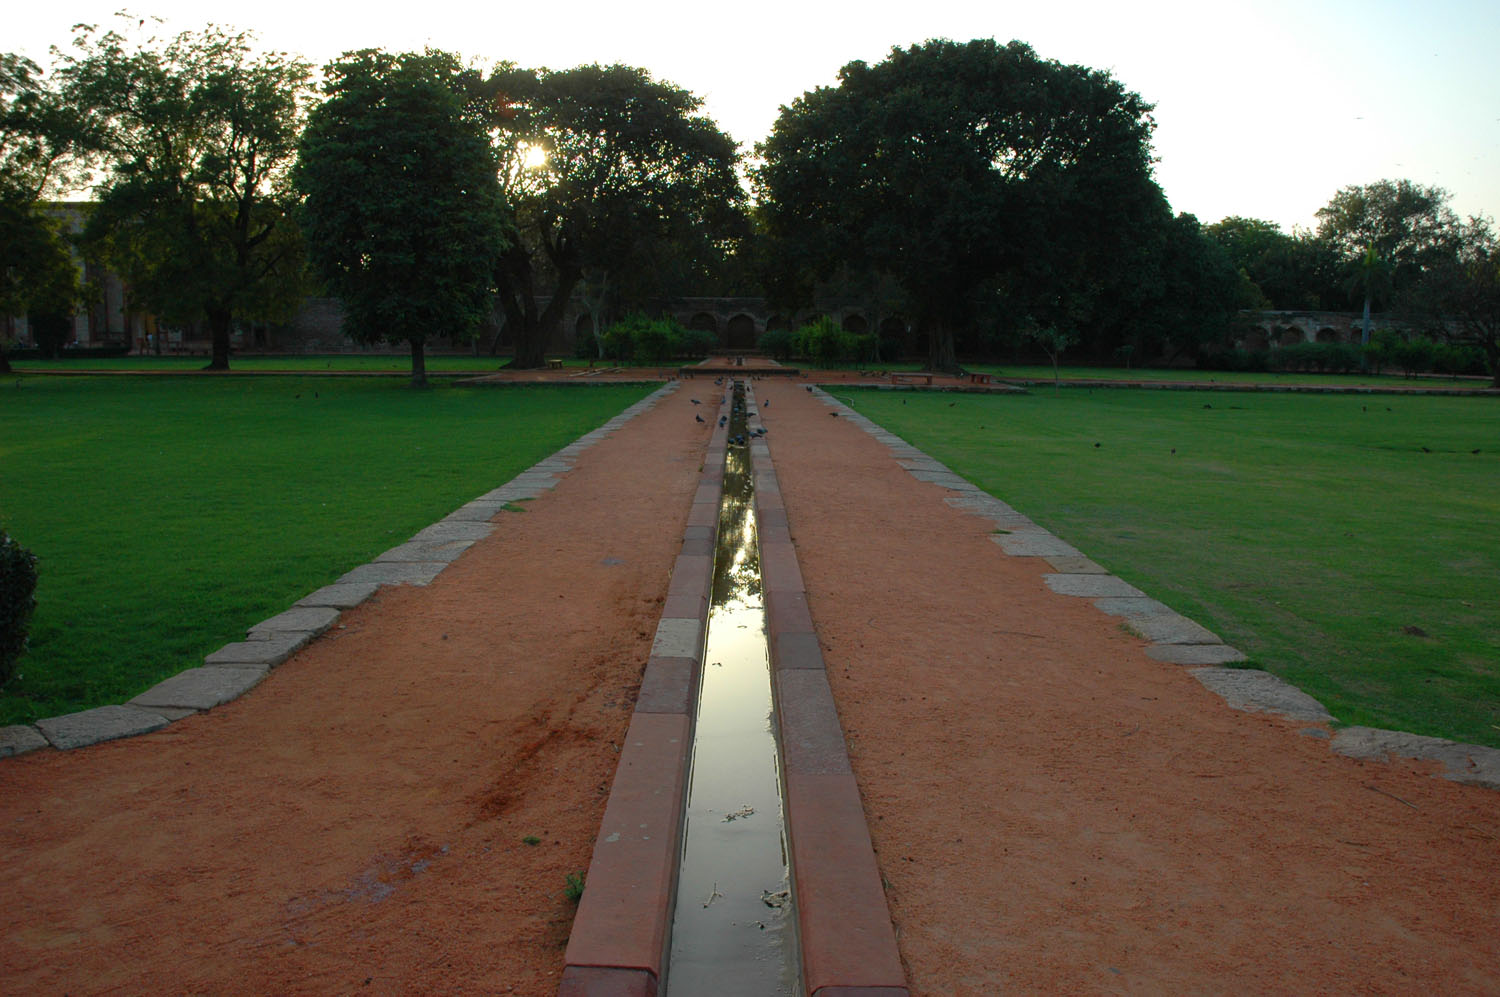 Dusk in the charbagh adjacent to Humayun's Tomb, New Delhi, 5 March, 2007, photograph by Gordon Brent Ingram